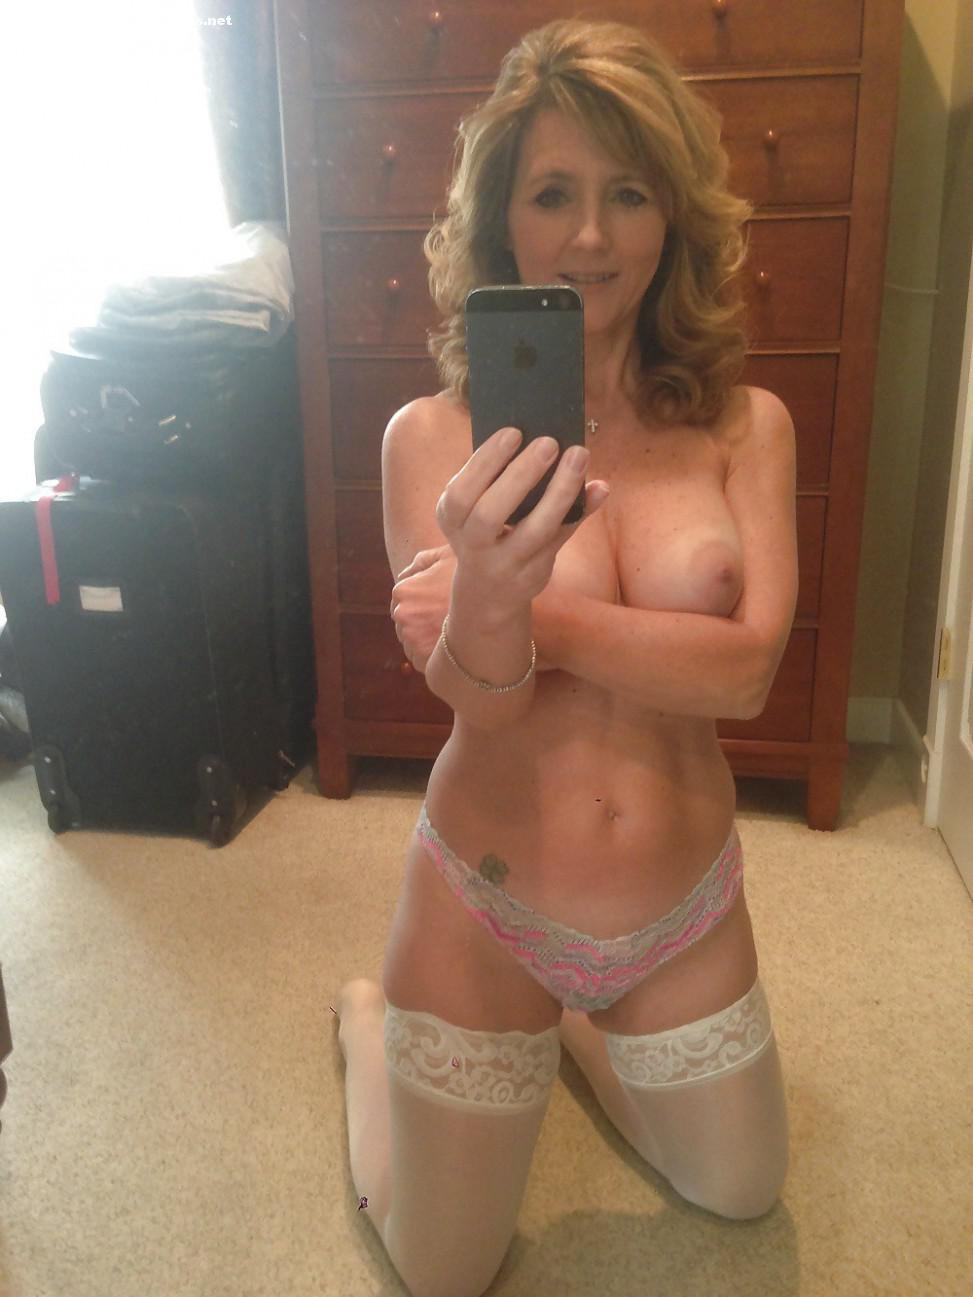 Are not blonde self shot nude milf selfies many thanks